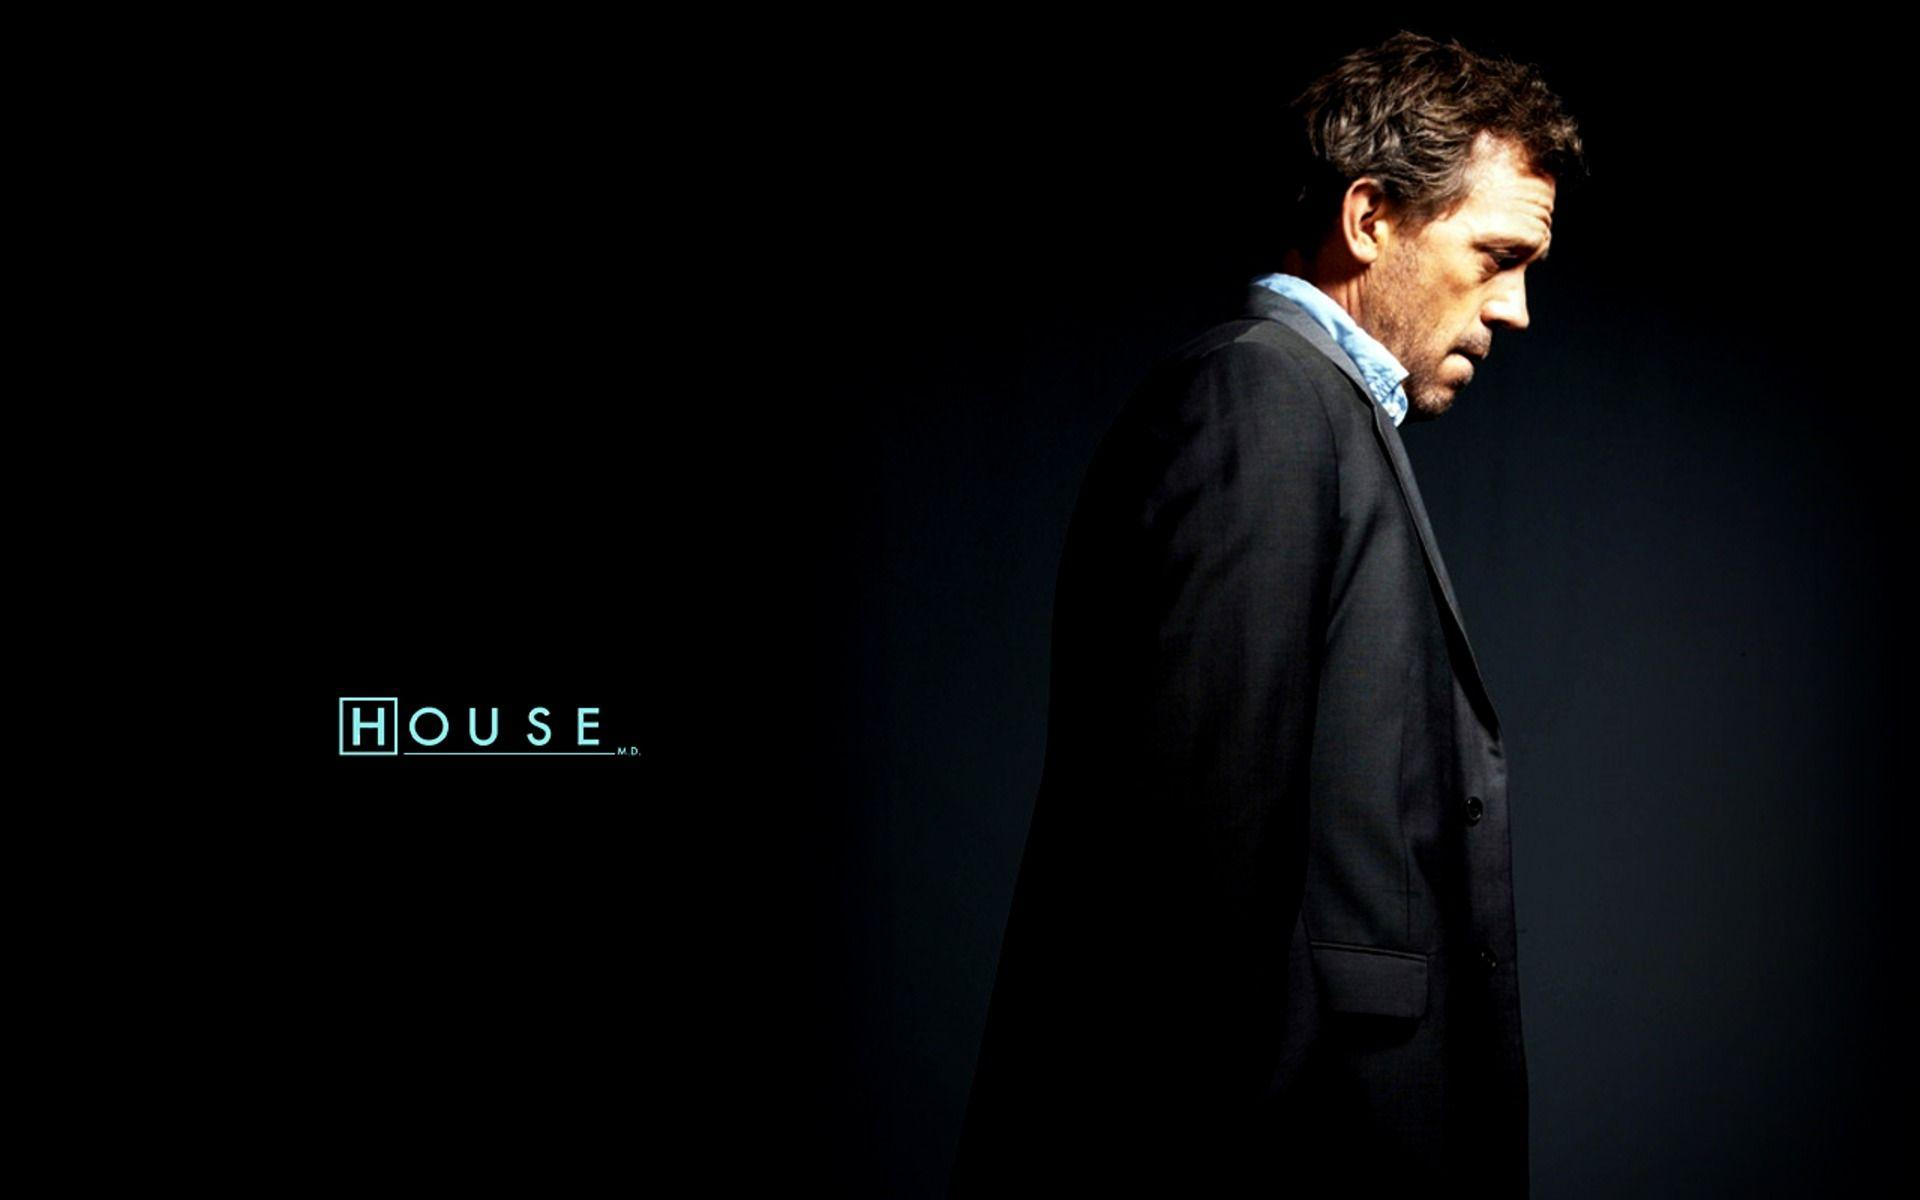 house md quotes wallpaper